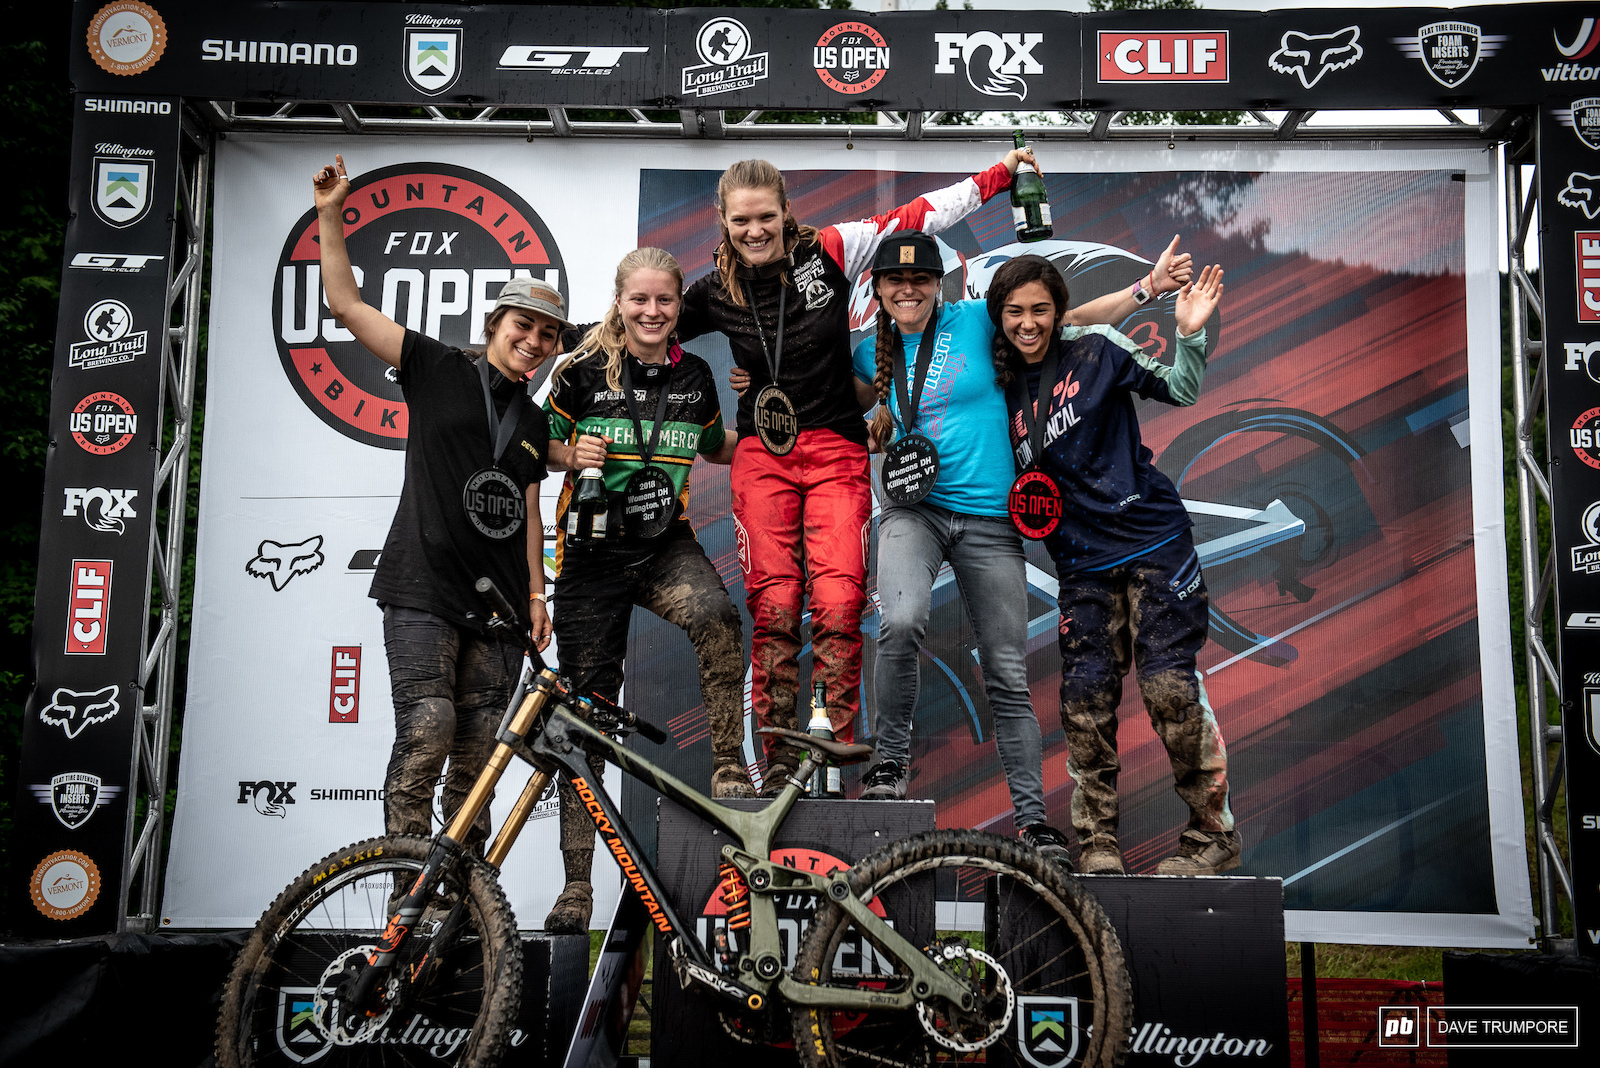 The fastest women at the 2018 Fox MTB US Open Downhill.